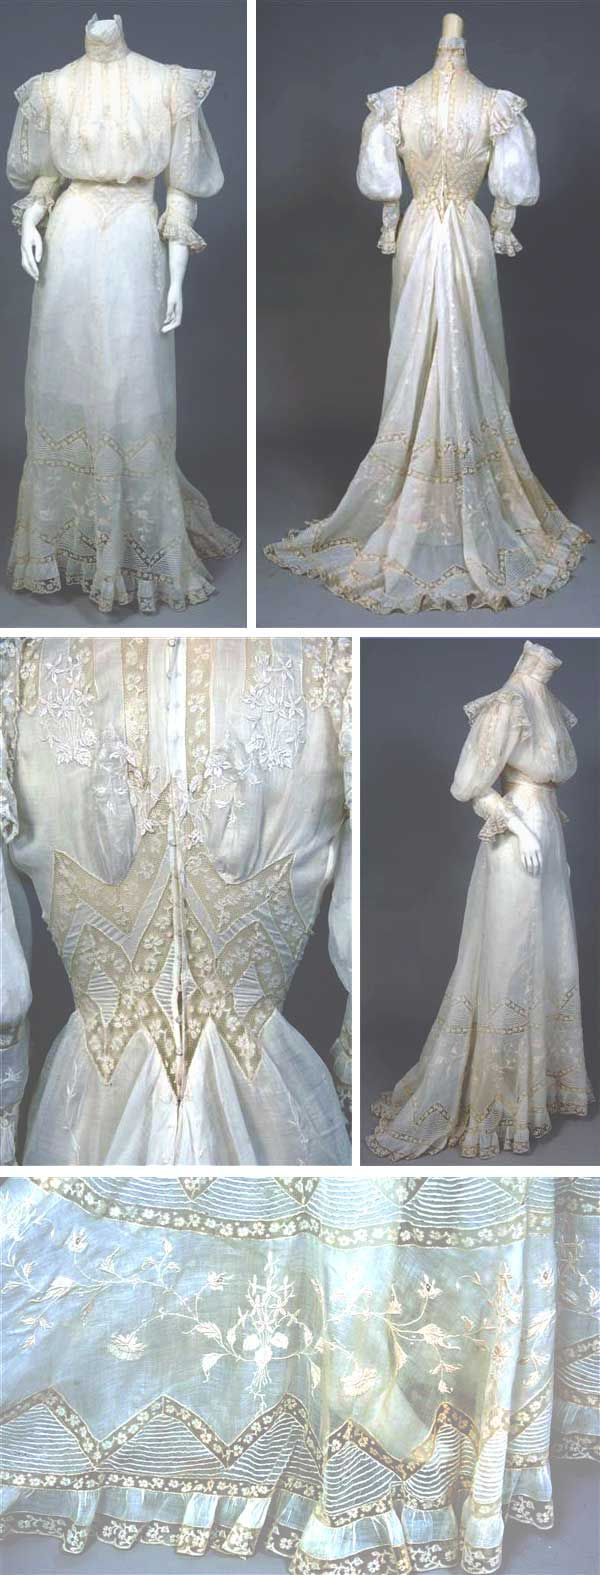 #Embroidered handkerchief linen dress, ca. 1900. Embroidery on bodice overlaps lace insertion in some places. High collar with stays on both sides. Large puffy sleeves above embroidered, ruffled cuff. Waistline comprises a series of diamond-shaped panels of lace